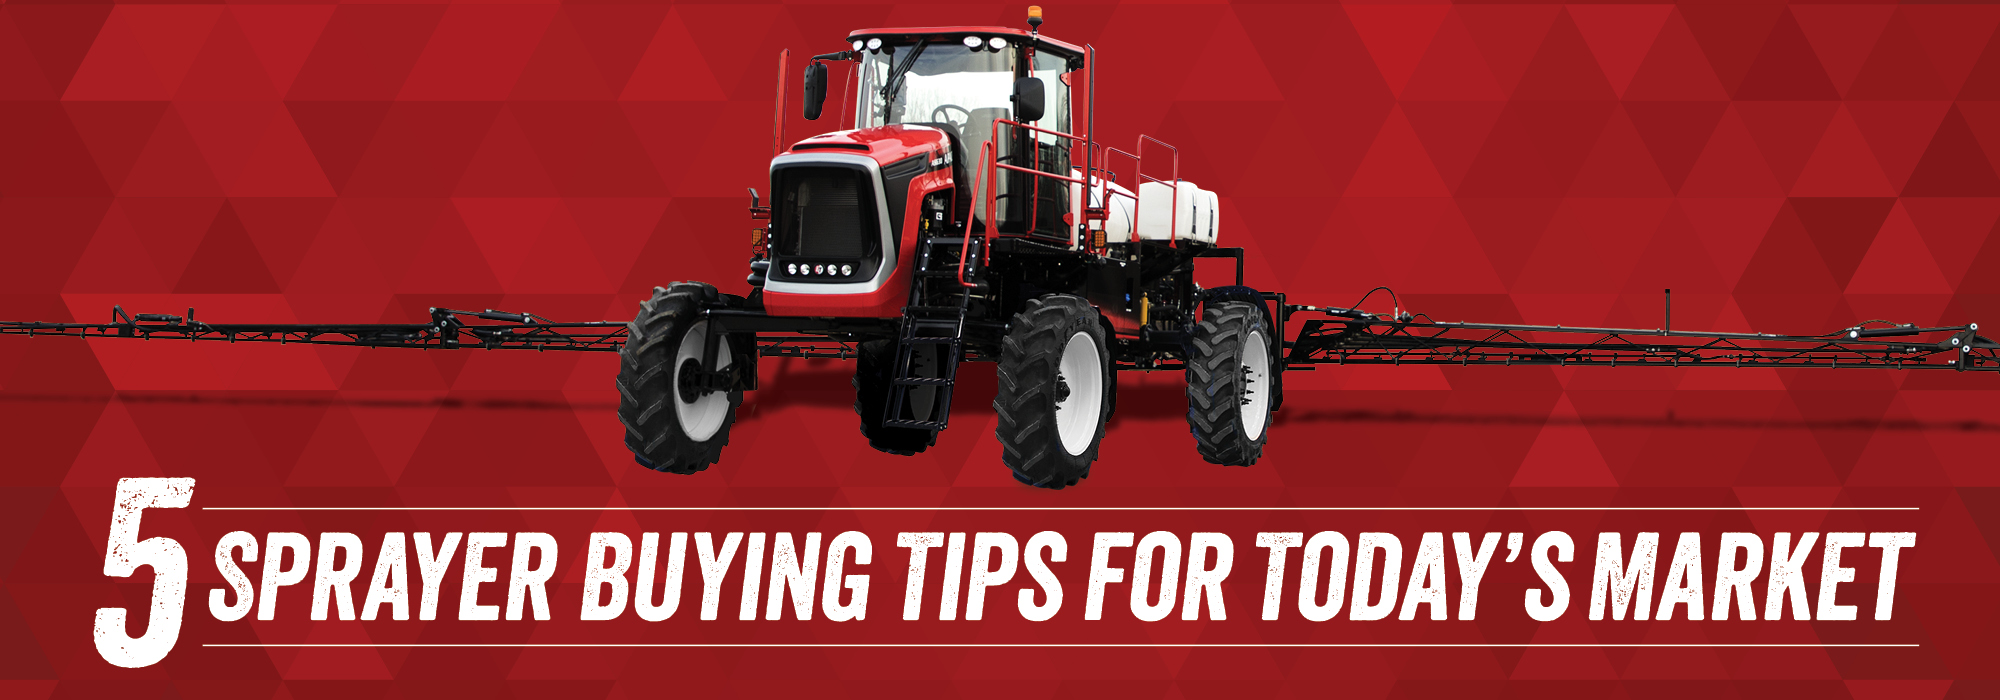 5 Sprayer Buying Tips for Today's Market